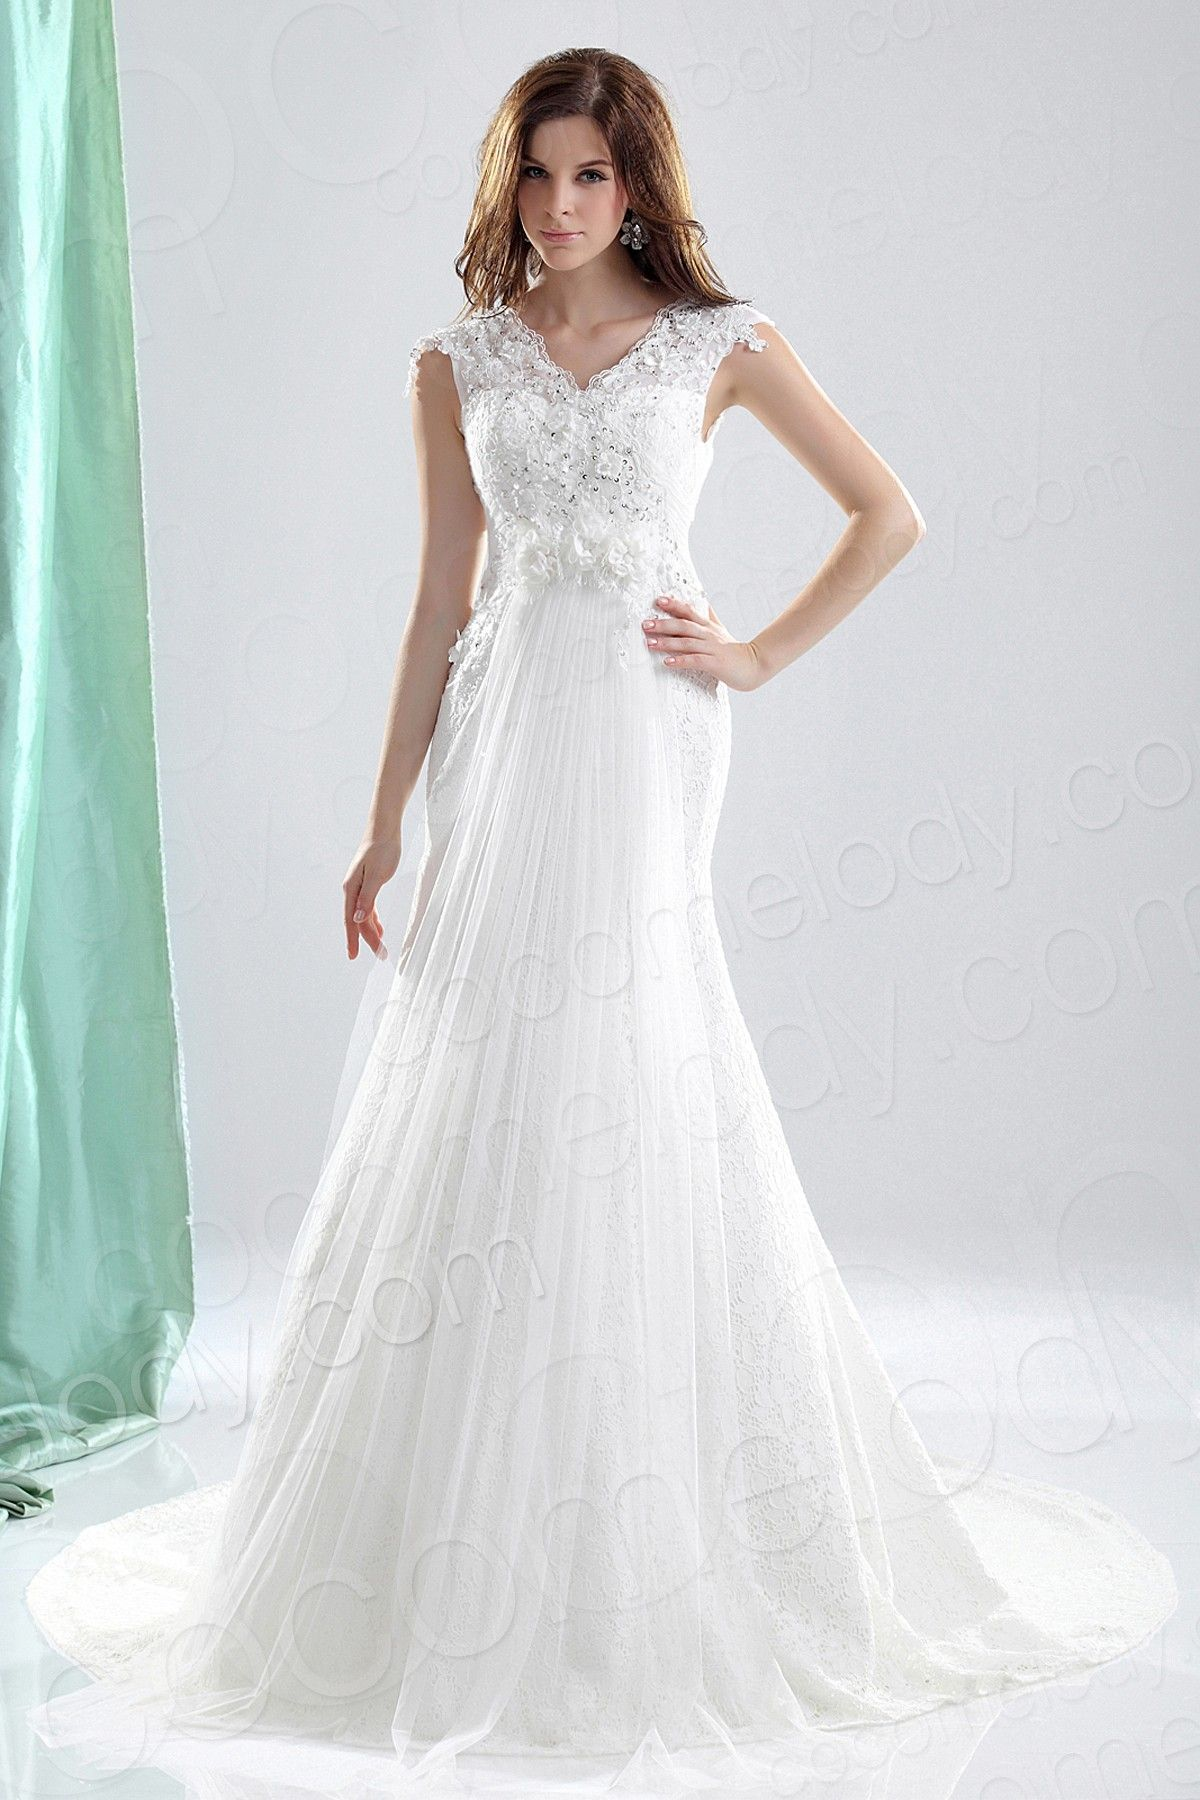 Tank top wedding dresses  TrumpetMermaid Court Train Lace Wedding Dress CWLTAD